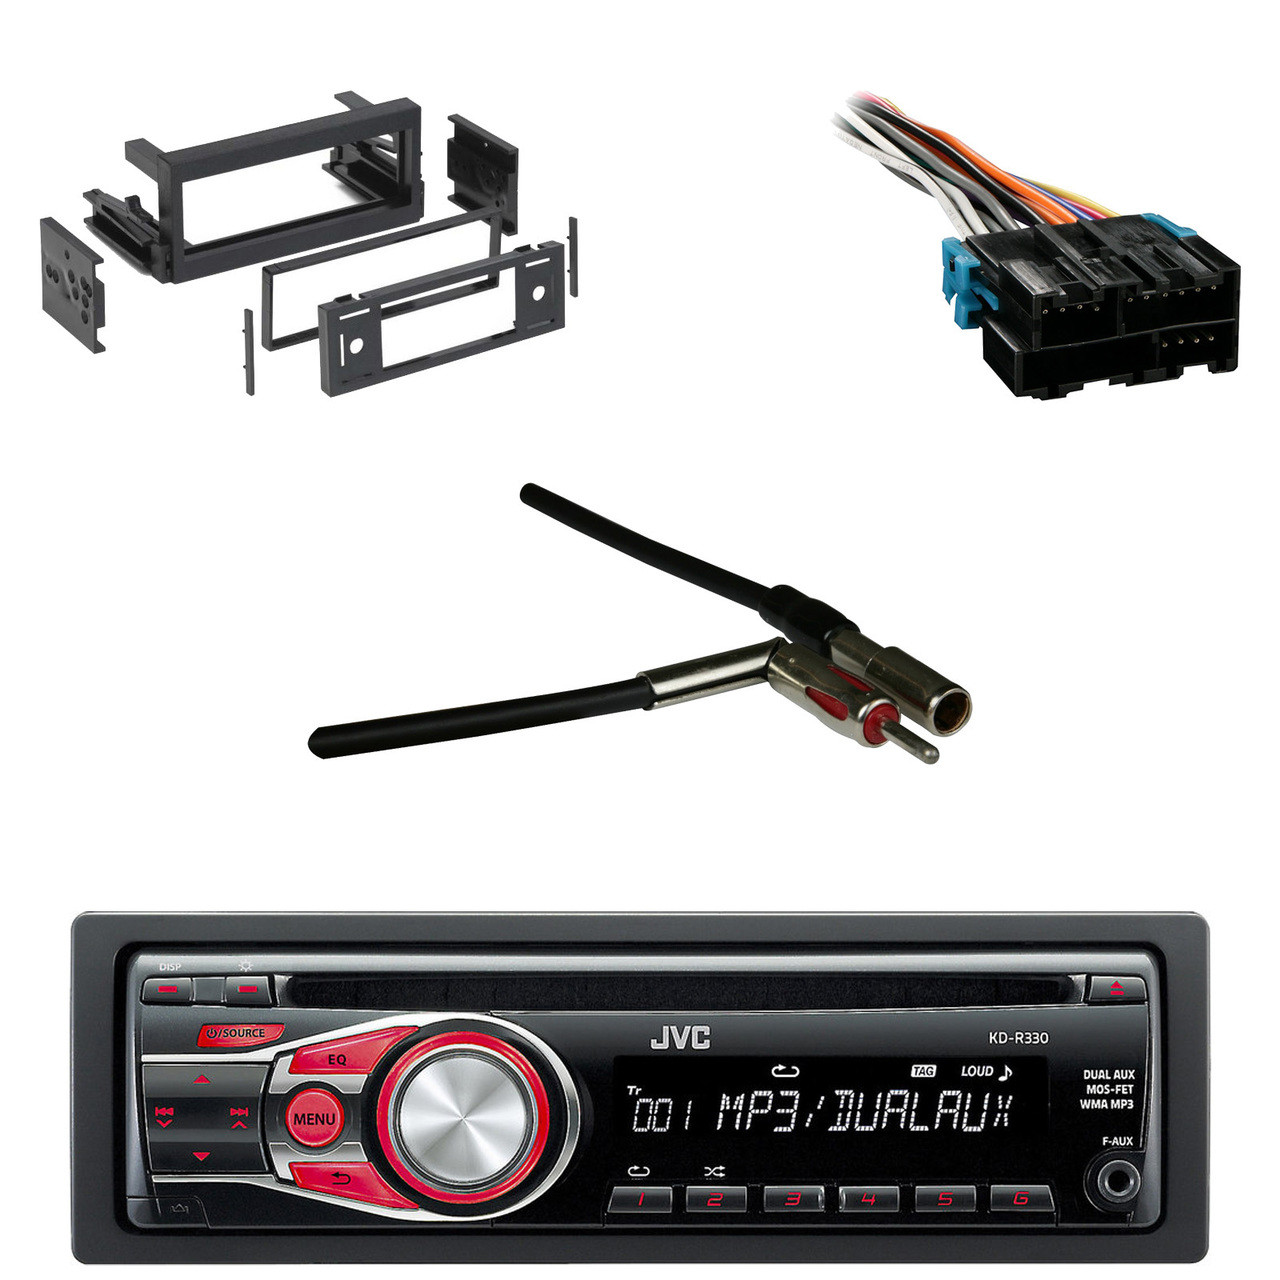 hight resolution of jvc kdr330 cd aux car radio antenn adapter gm wire harness gm rh roadentertainment com wiring